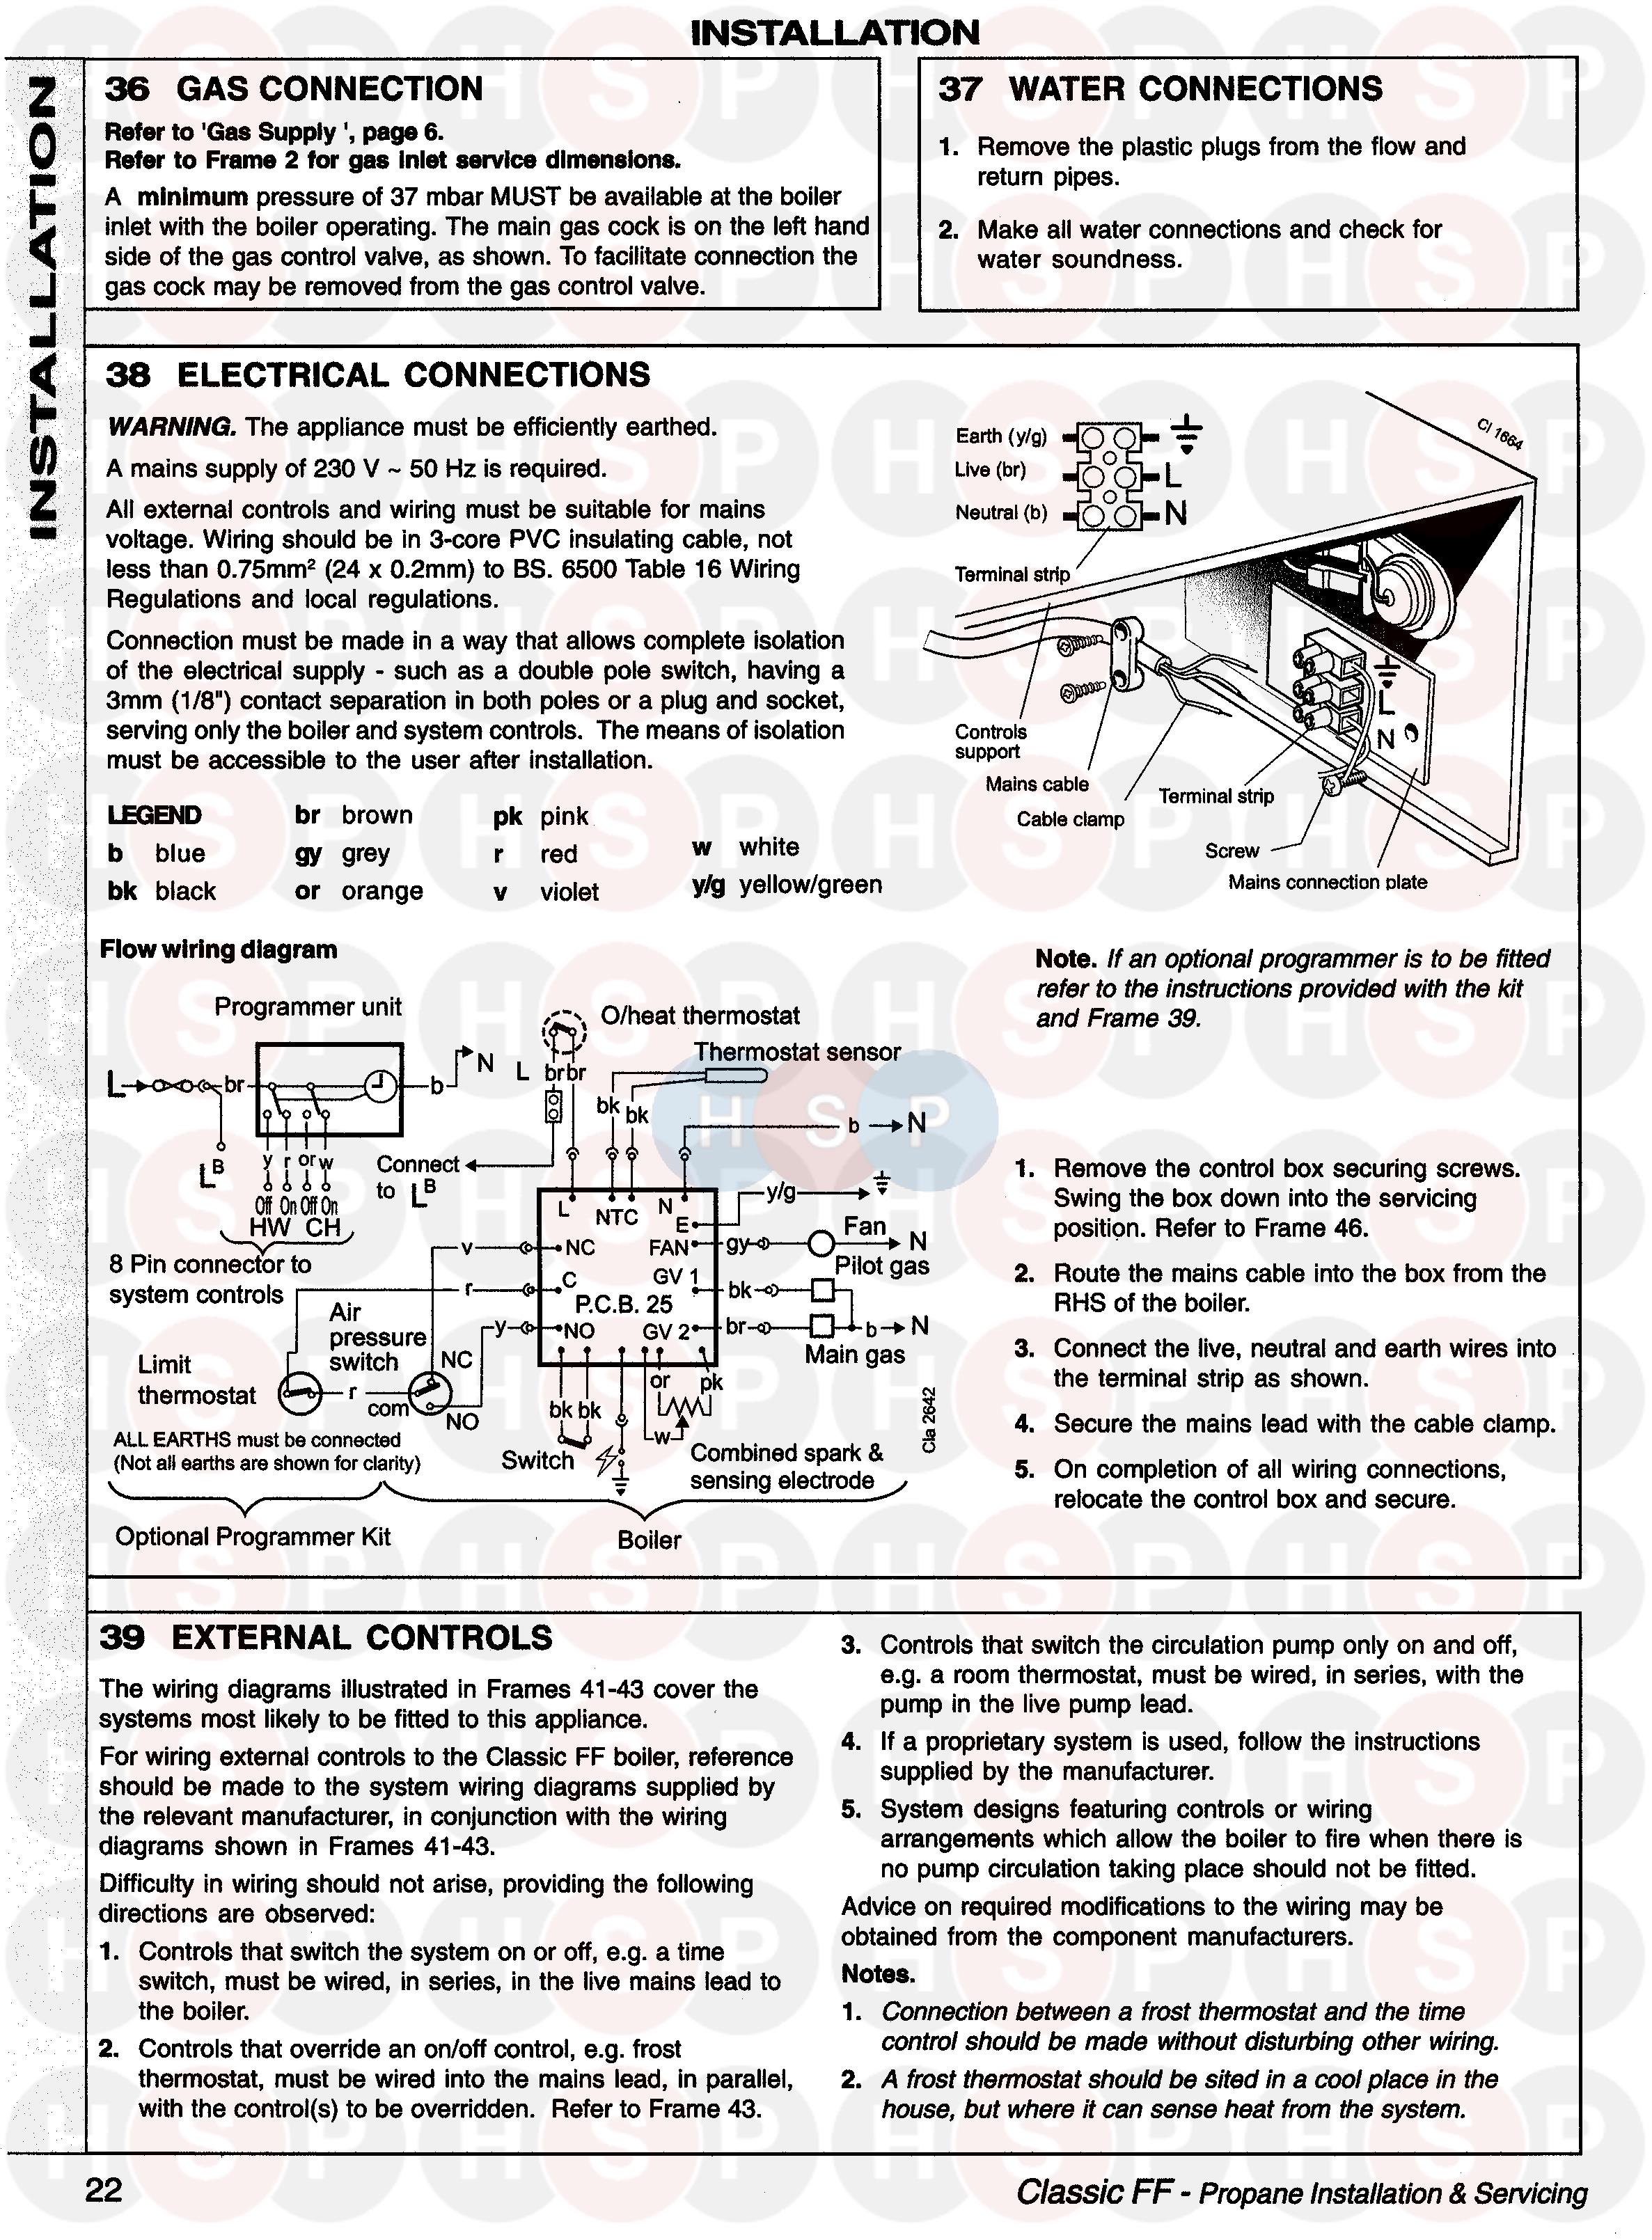 Ideal Classic Ff340 Wiring 1 Diagram Heating Spare Parts Lead Type Limit Switch Click The To Open It On A New Page